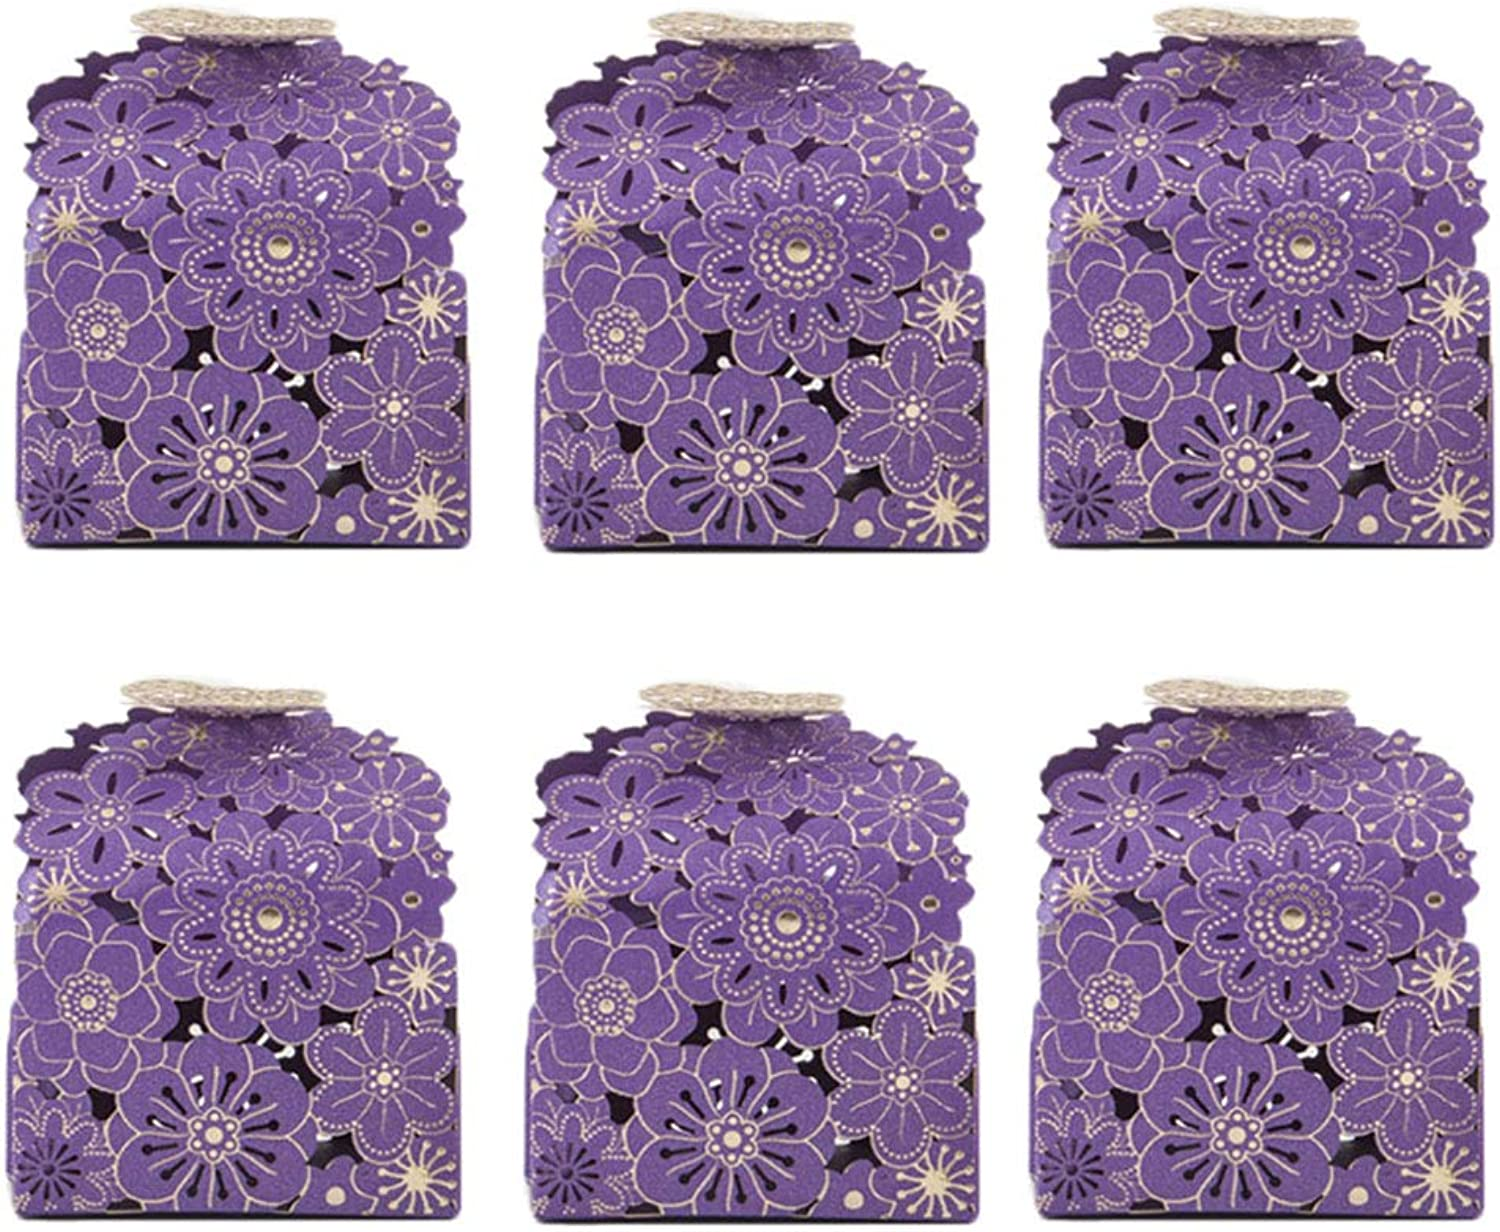 100pcs Candy Box Sugar Bowl New Style Sweets Boxes Hollow out European Style for Wedding Party (Purple)